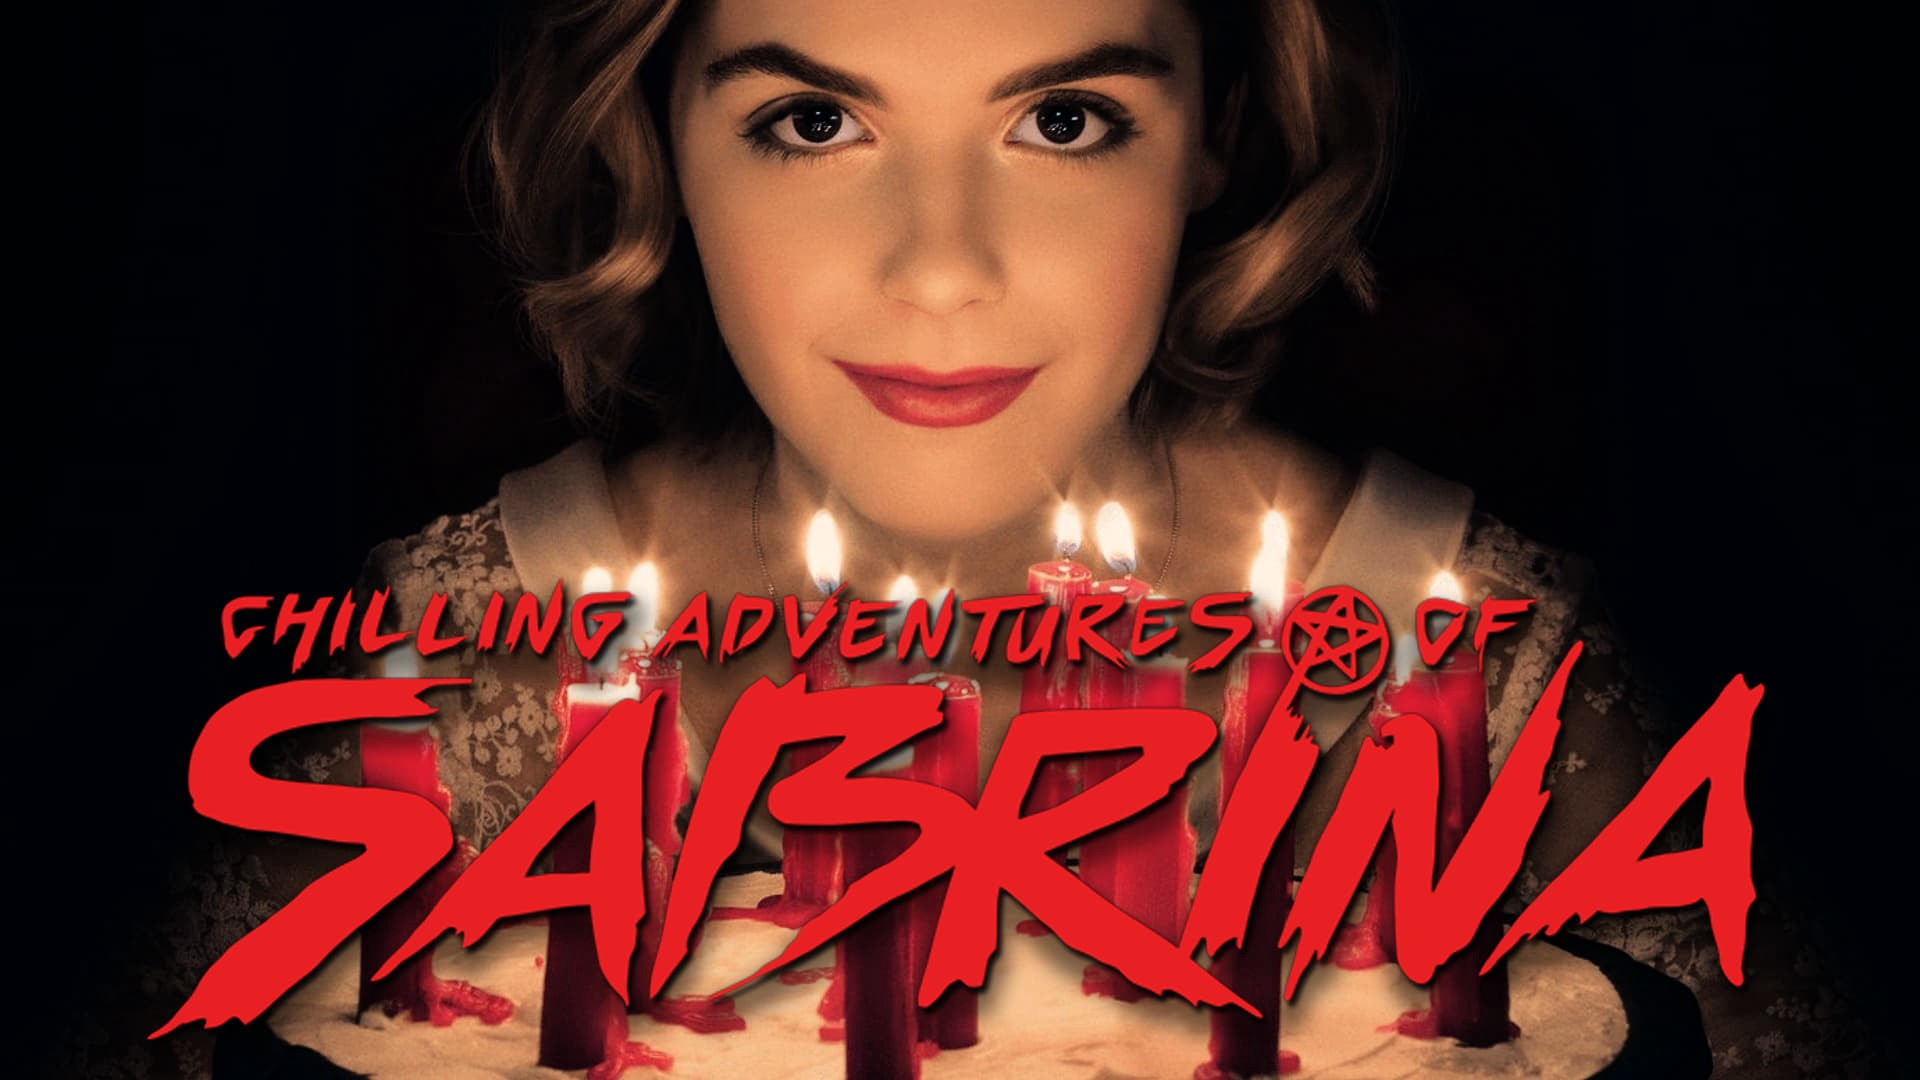 S2xe1 Chilling Adventures Of Sabrina Season 2 Episode 1 New